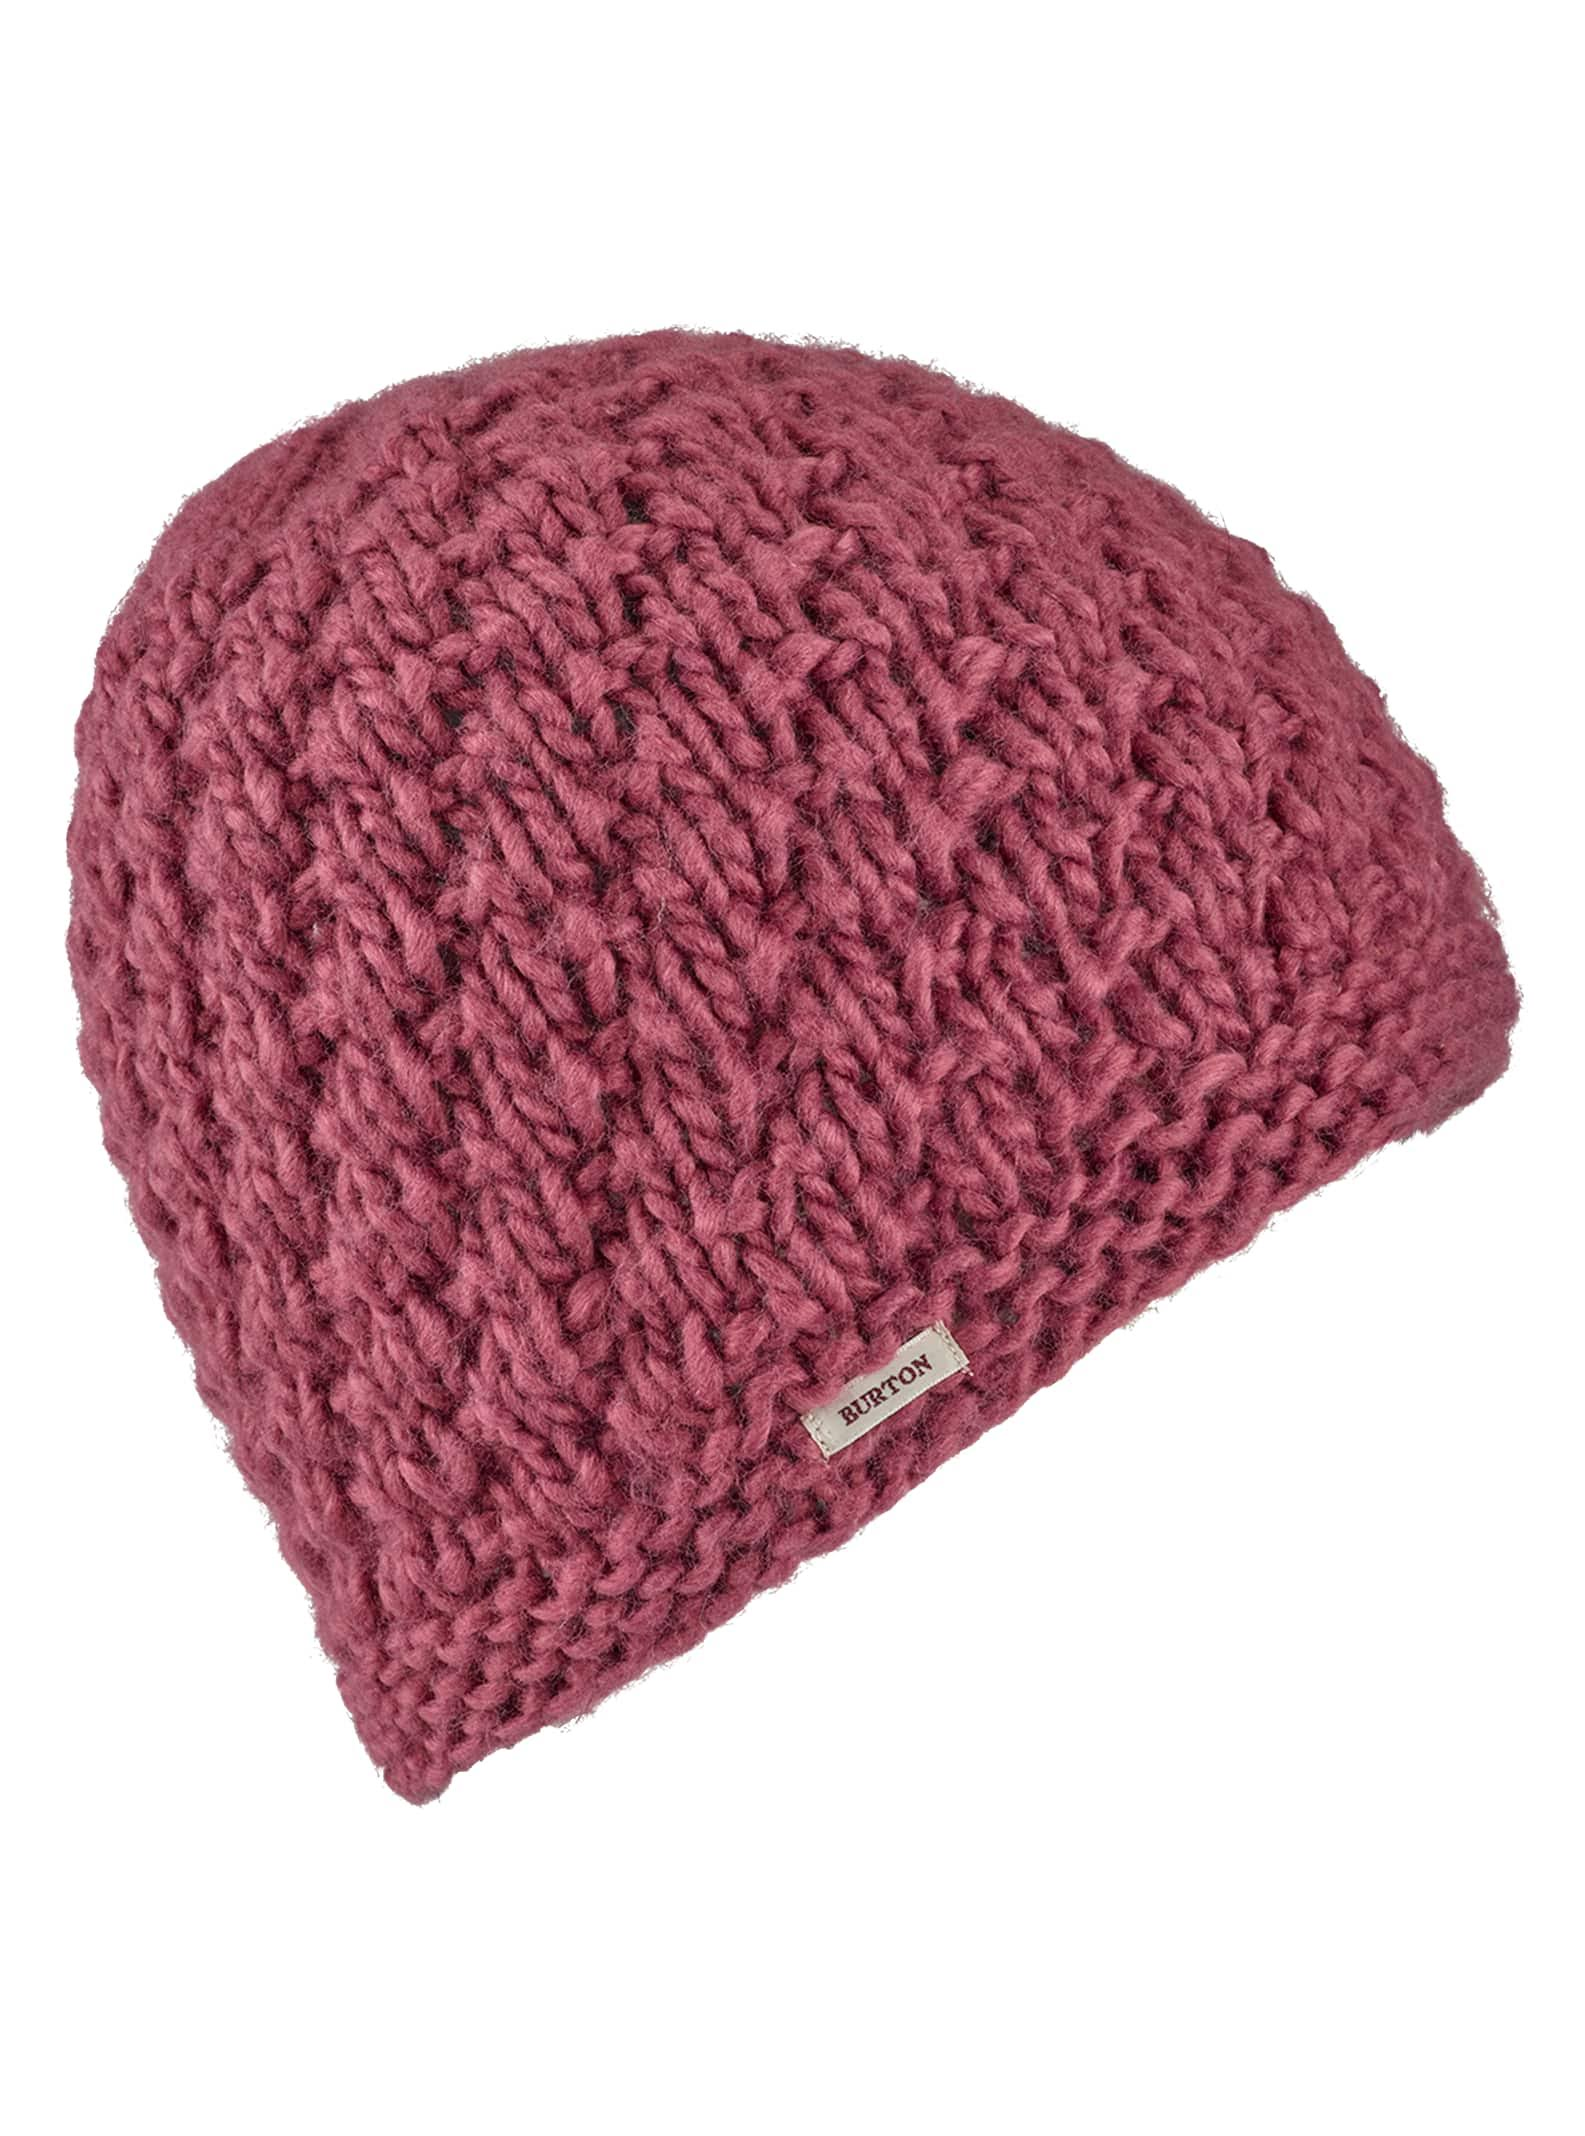 Burton Big Bertha (Rose Brown) Women's Beanie